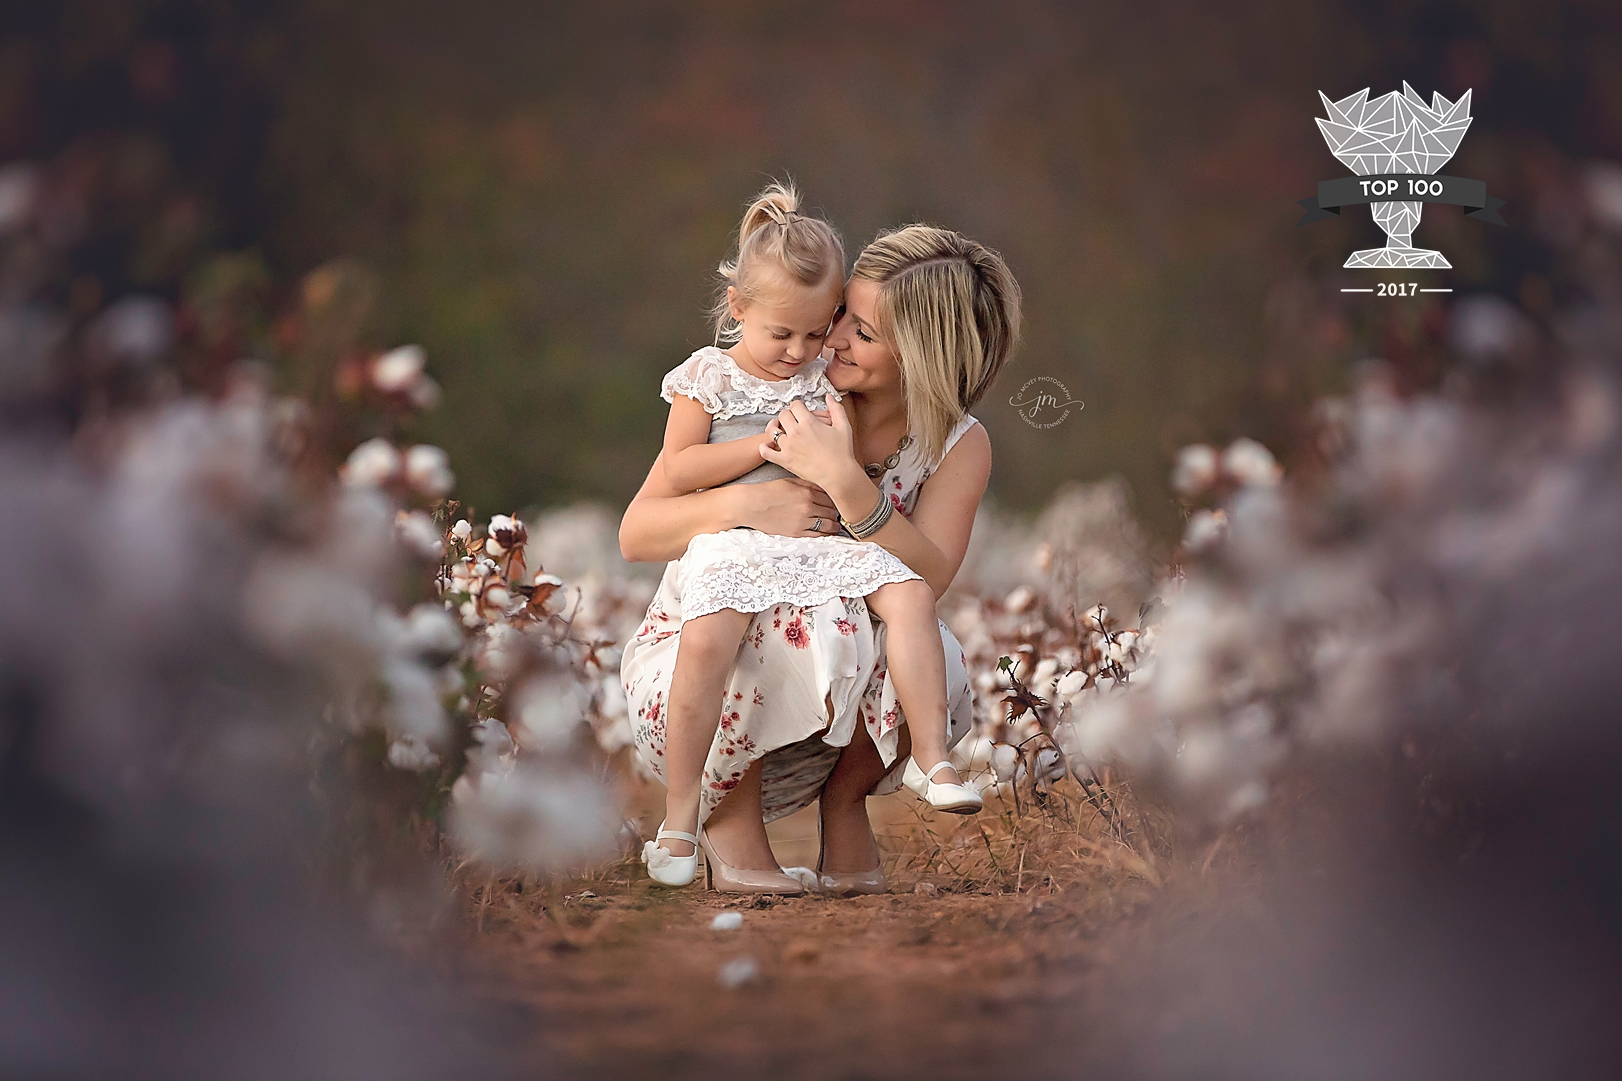 Shoot and share top 100 mother daughter in cotton field